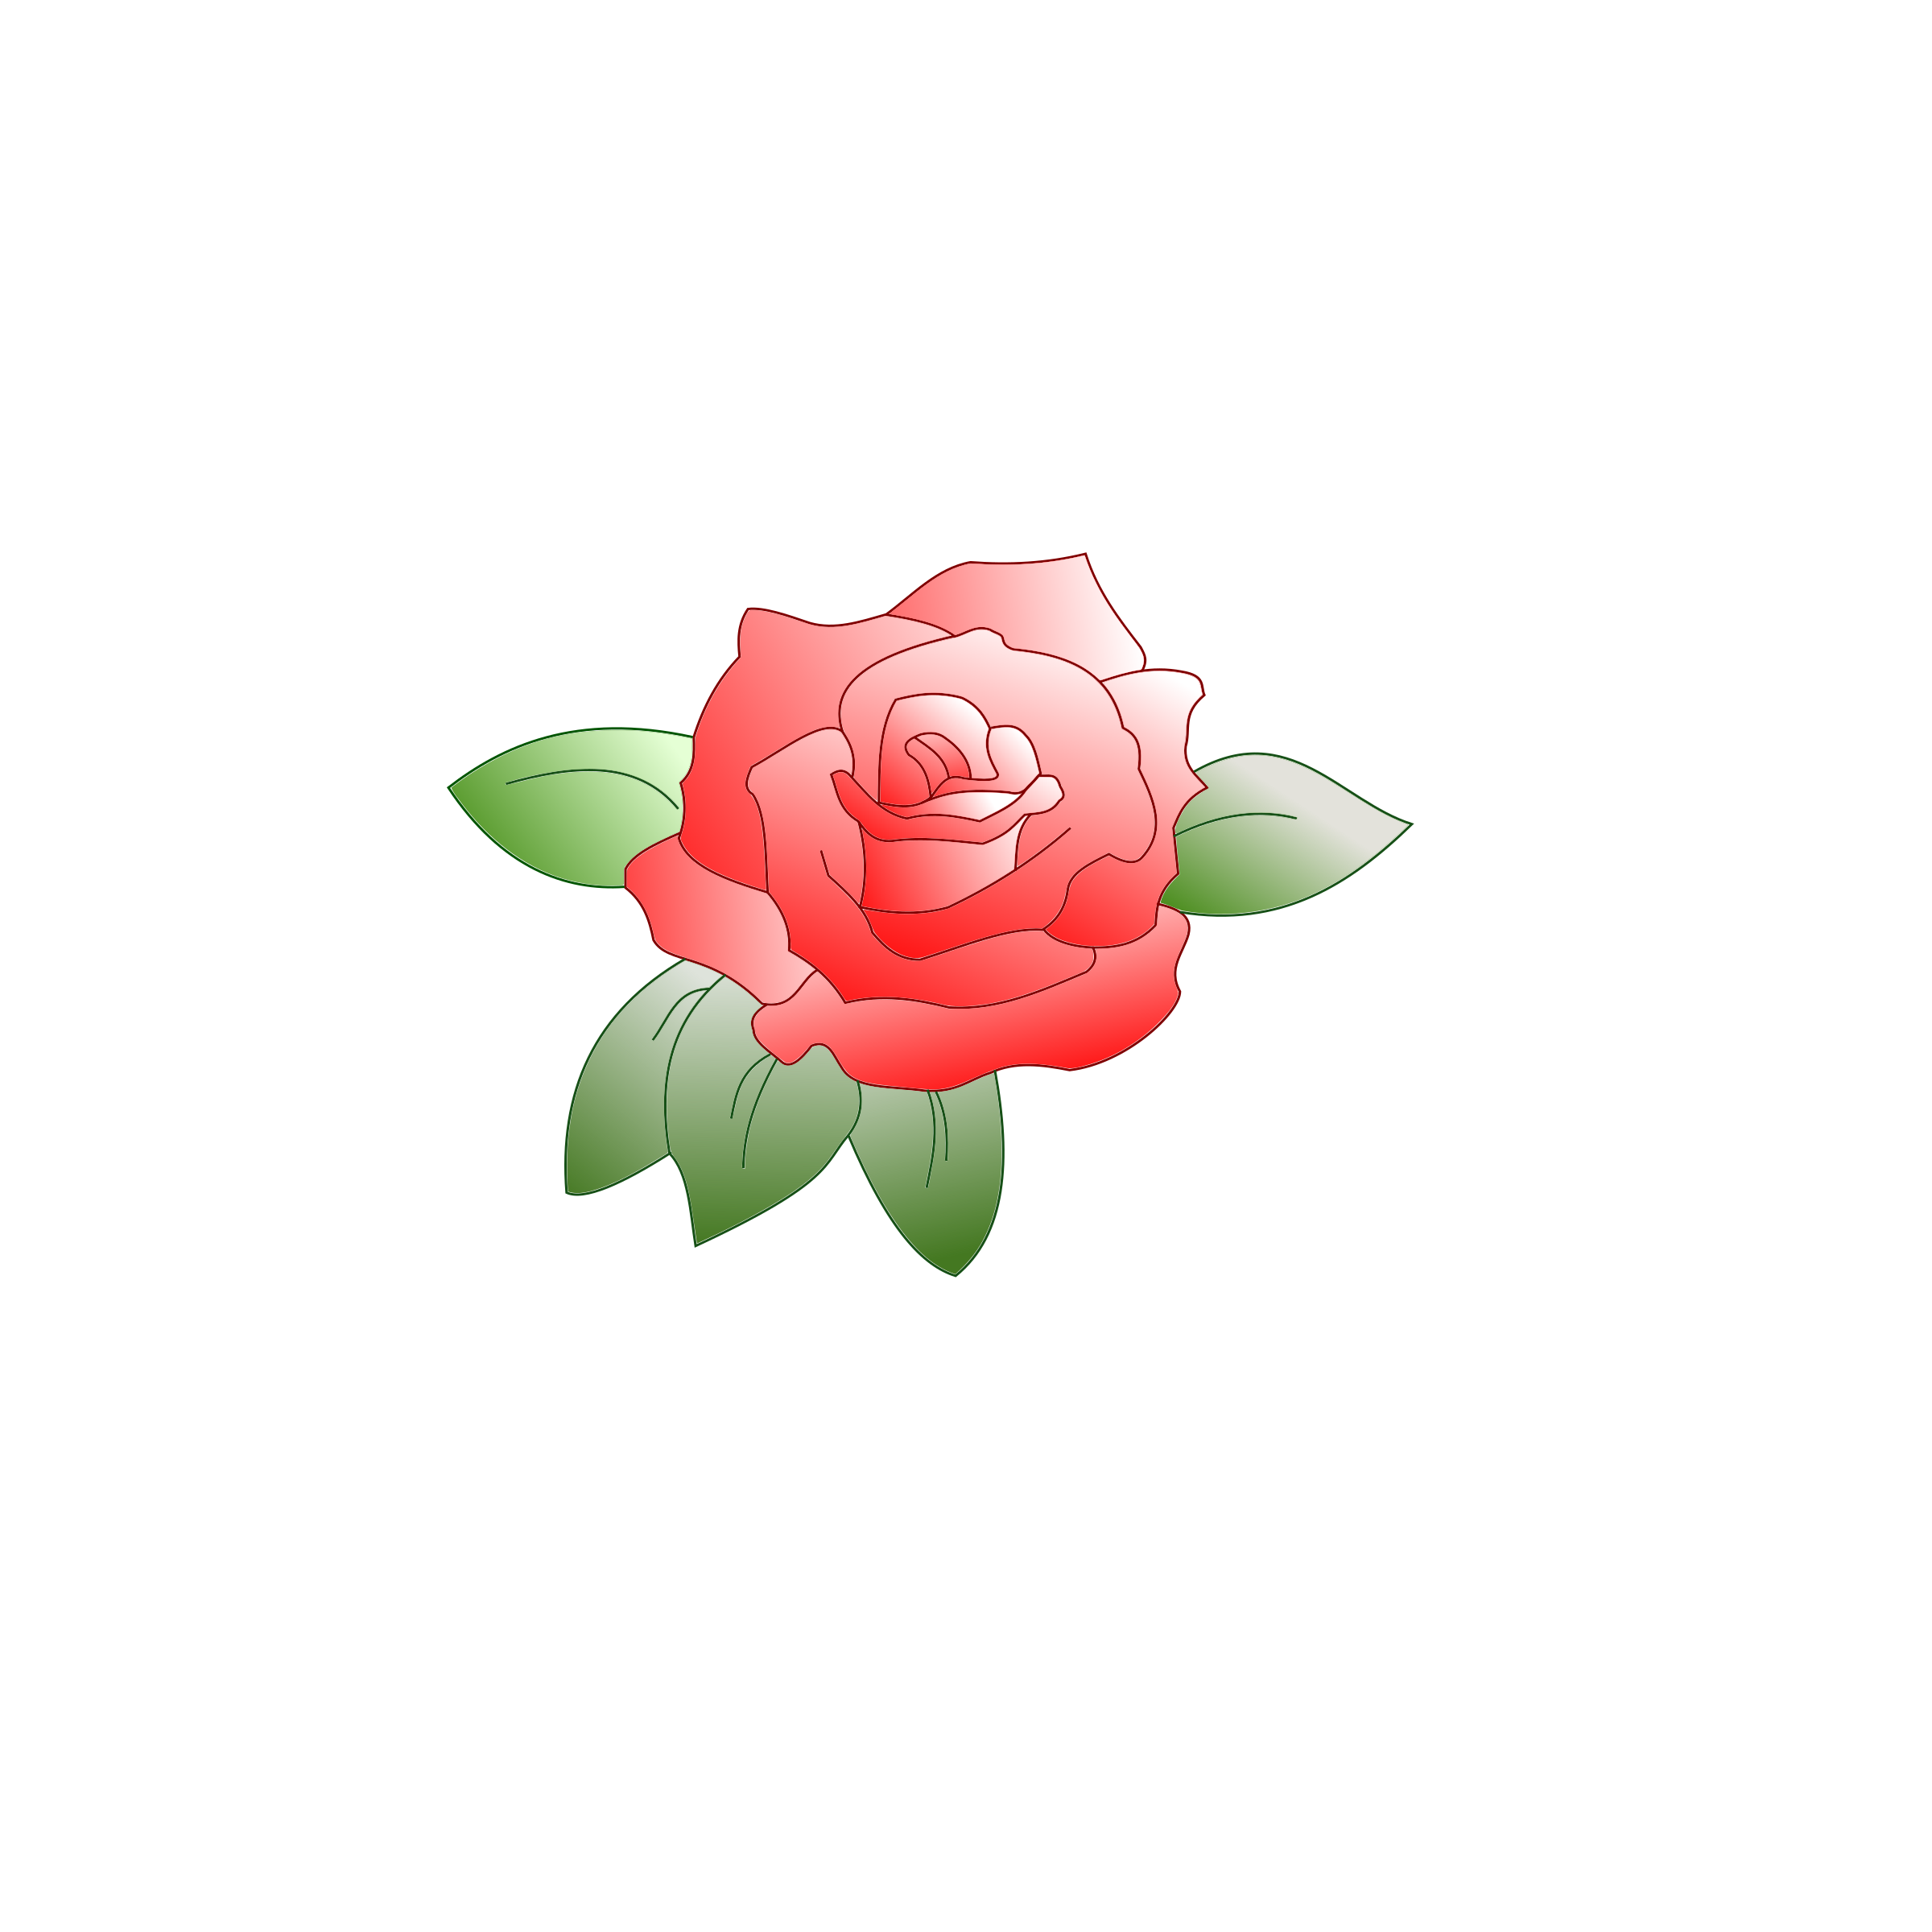 Clipart rose cute. Colored big image png